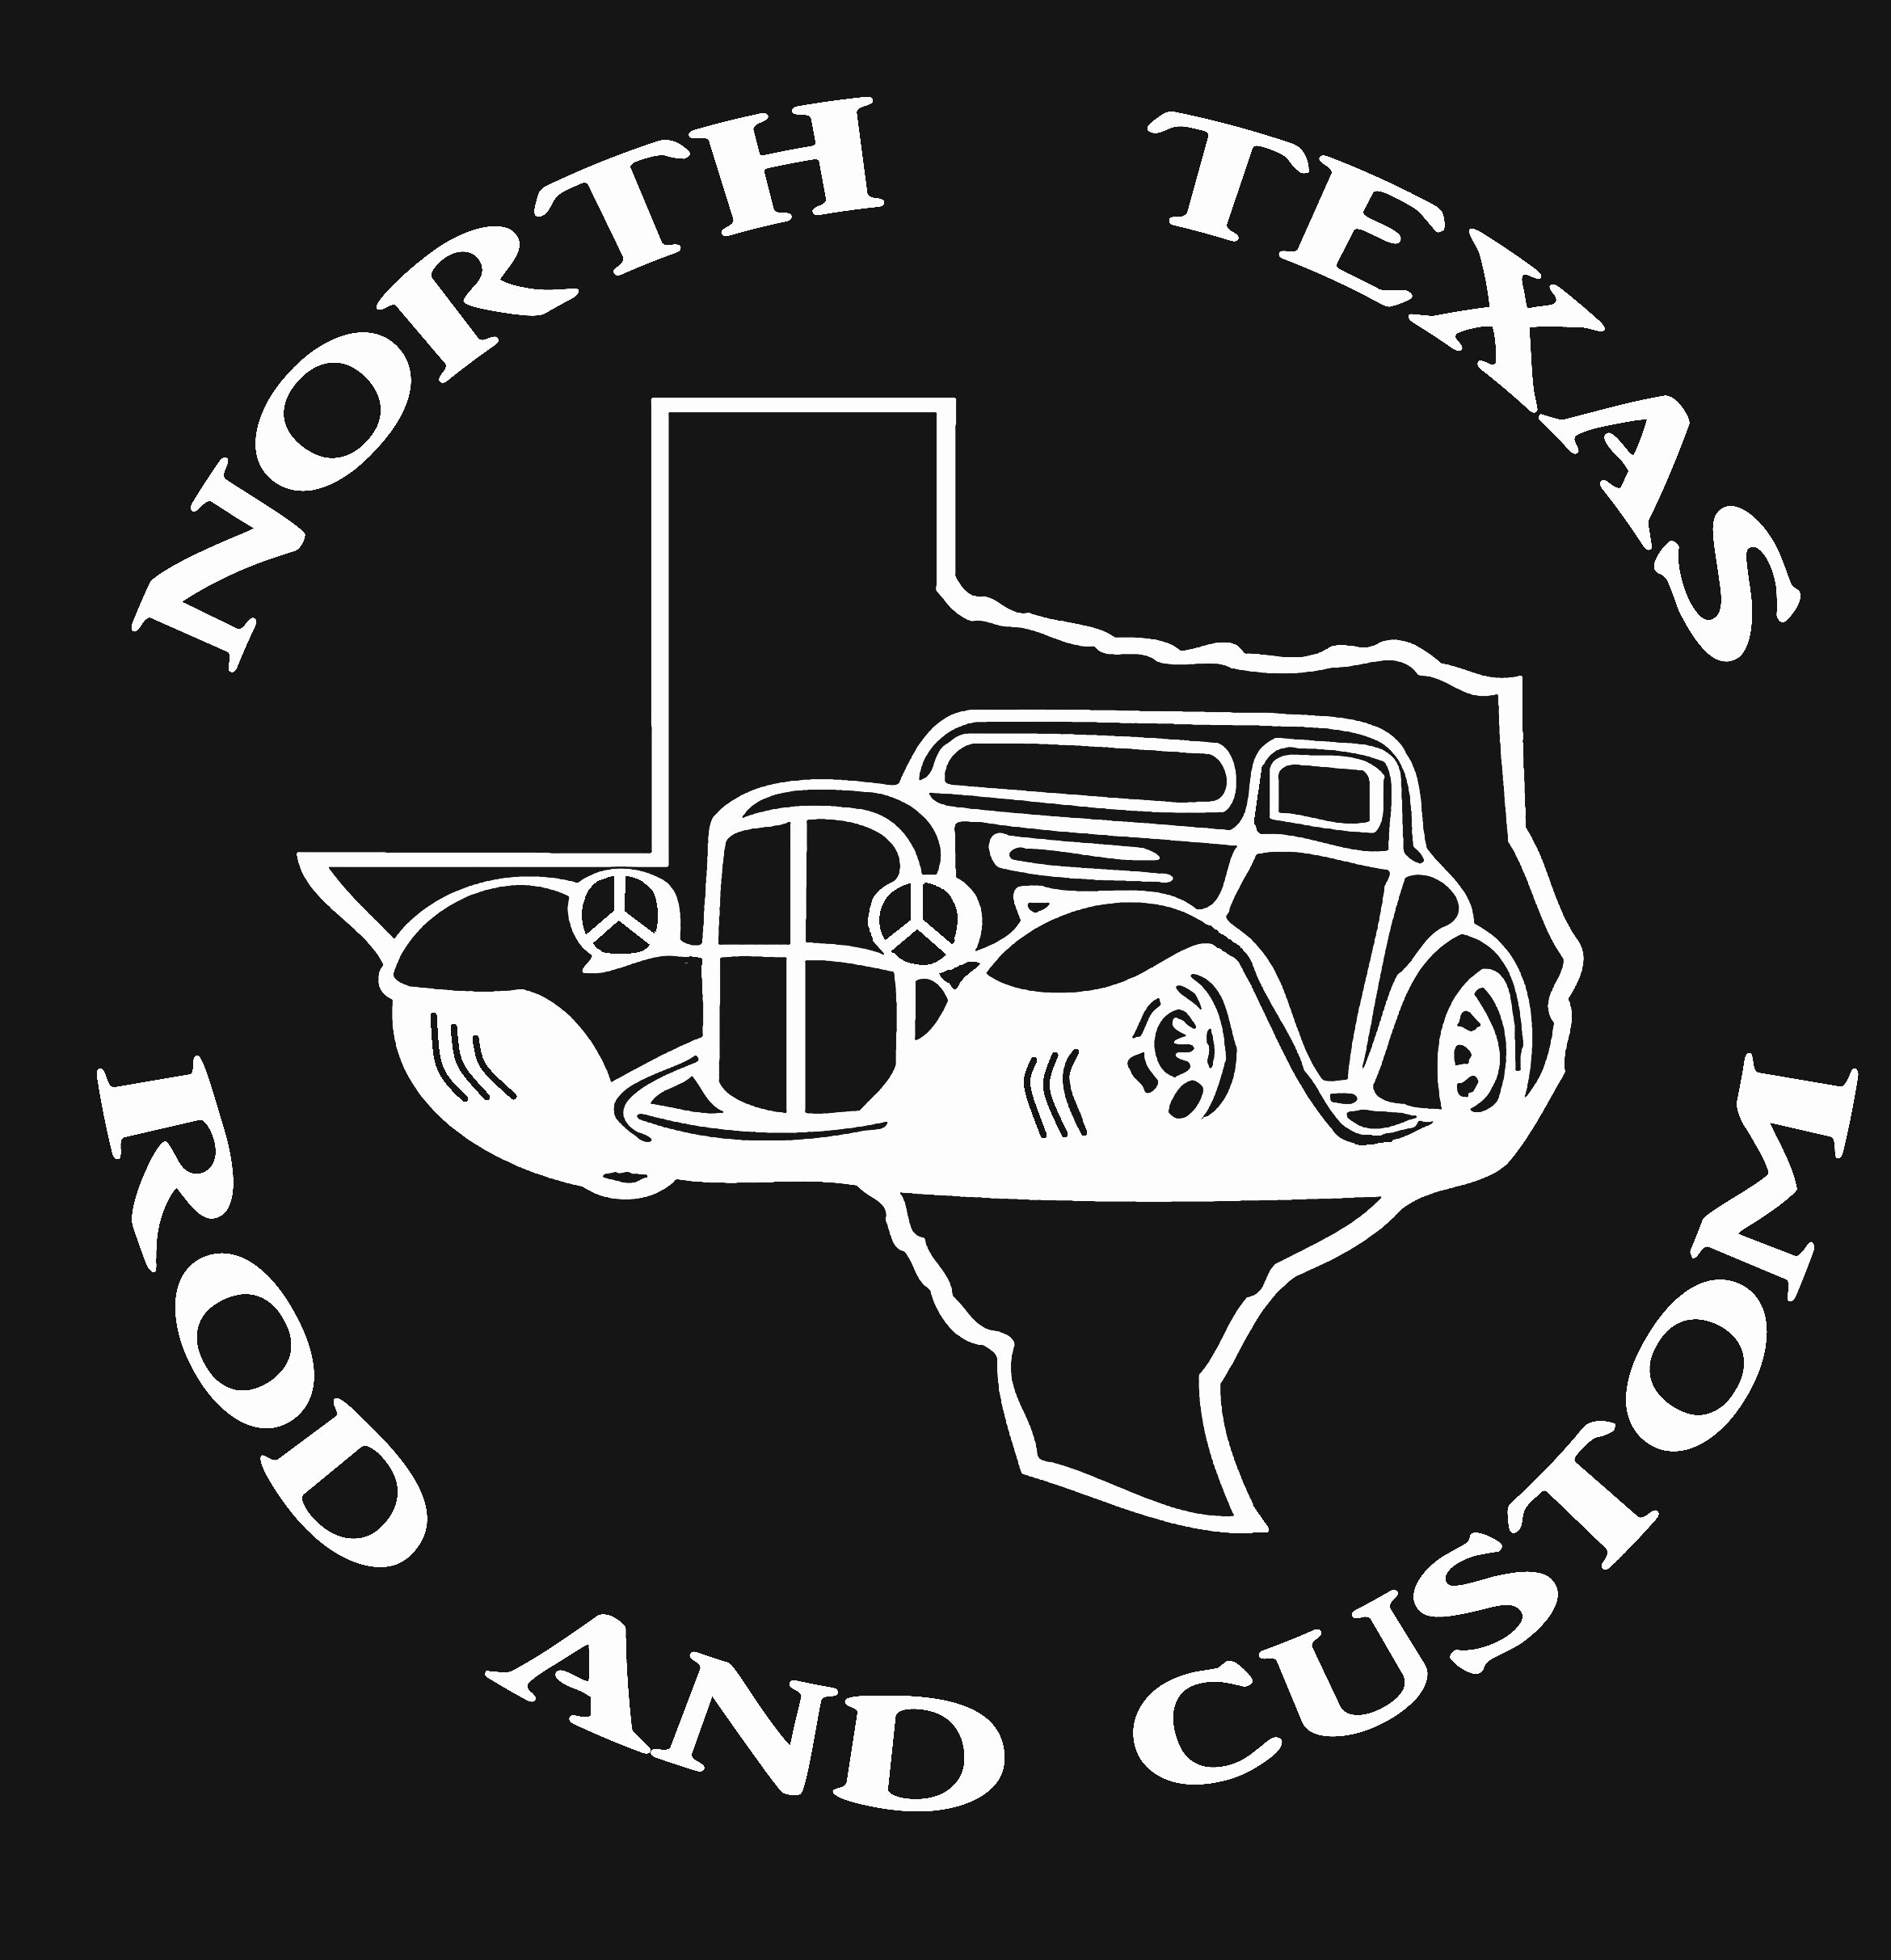 North Texas Rod and Custom, Muscle Cars and Restomods